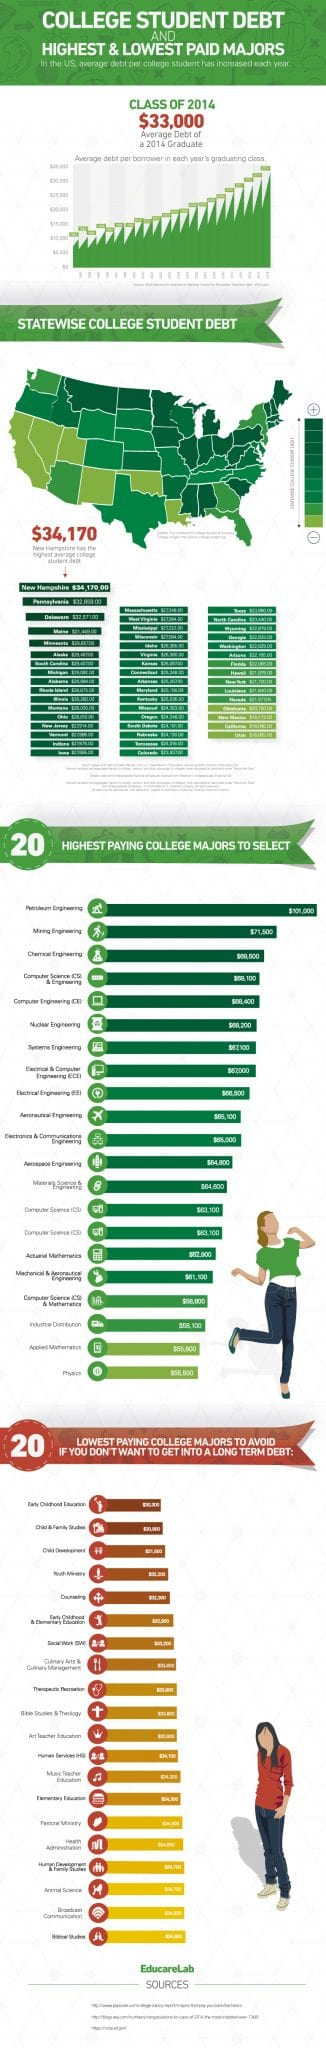 College Student Debt and Highest and Lowest Paid Majors